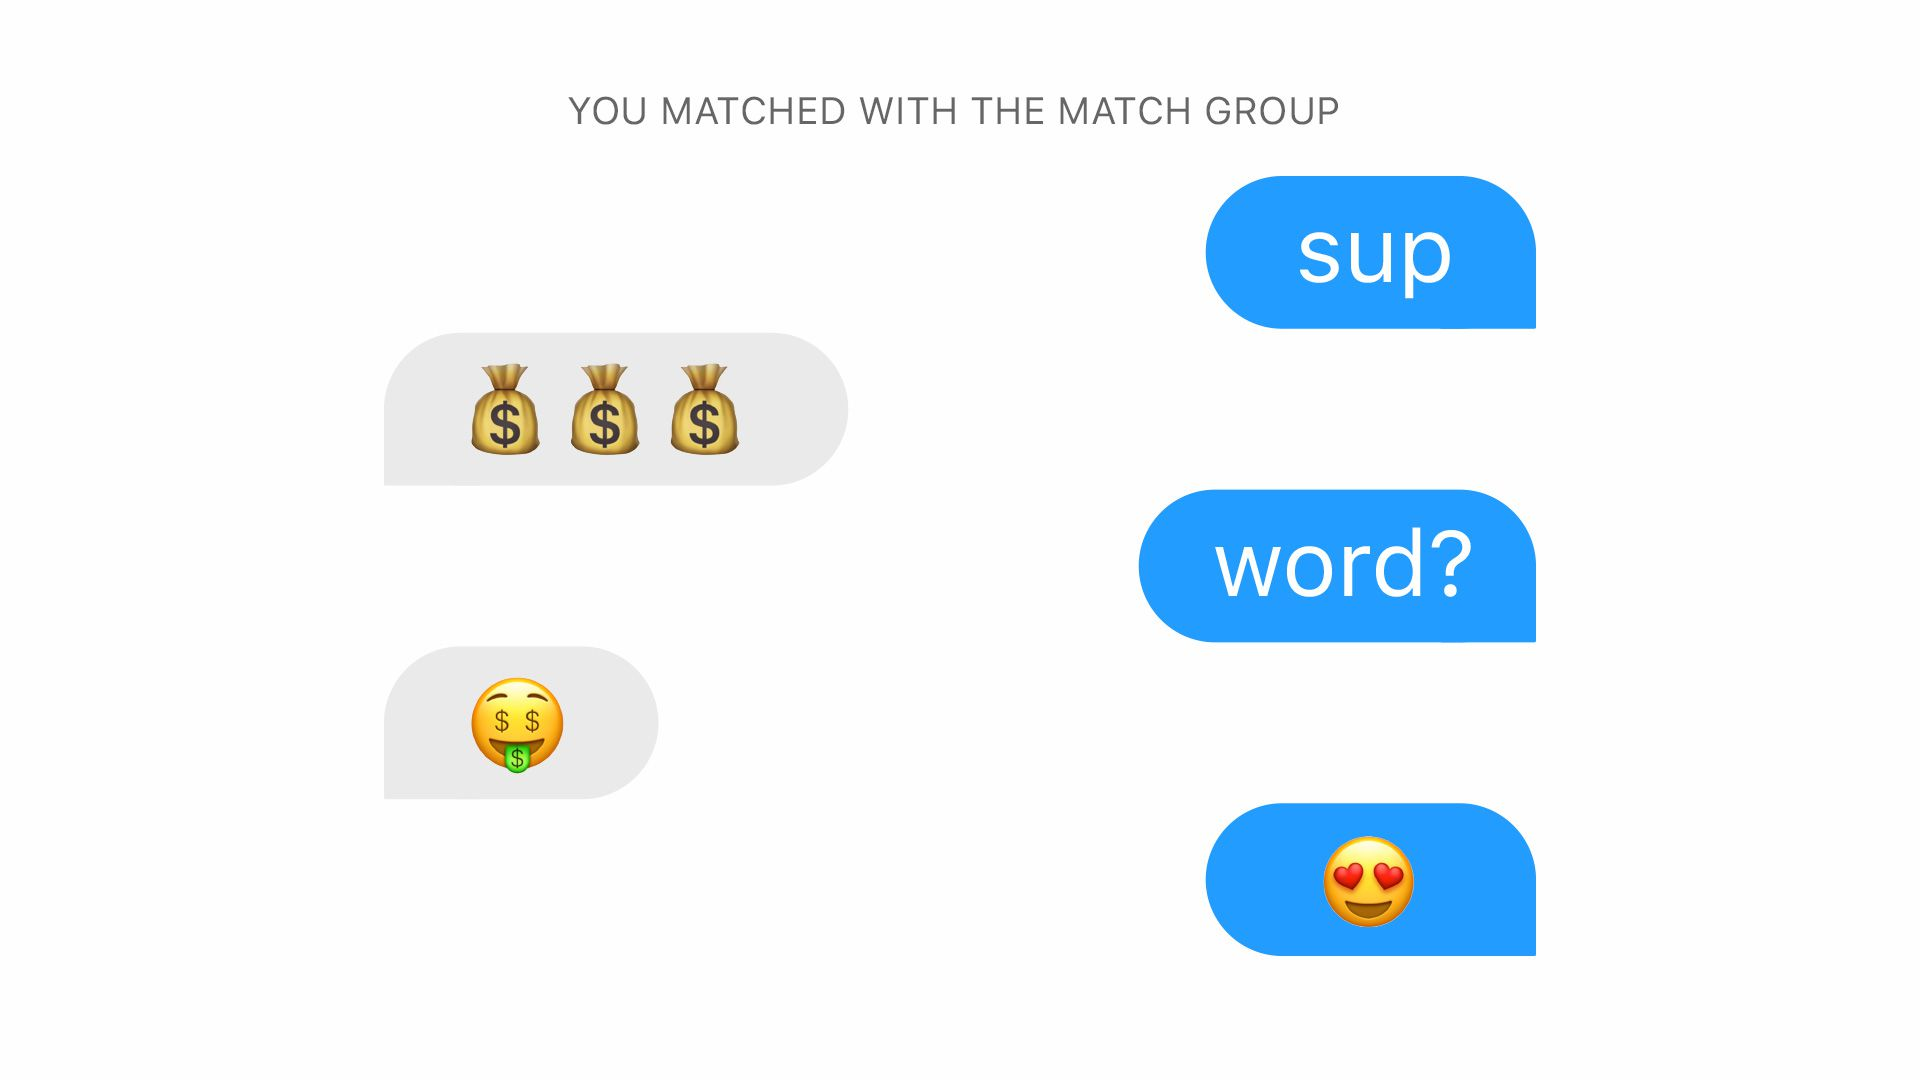 A stylized chat in the Tinder service.